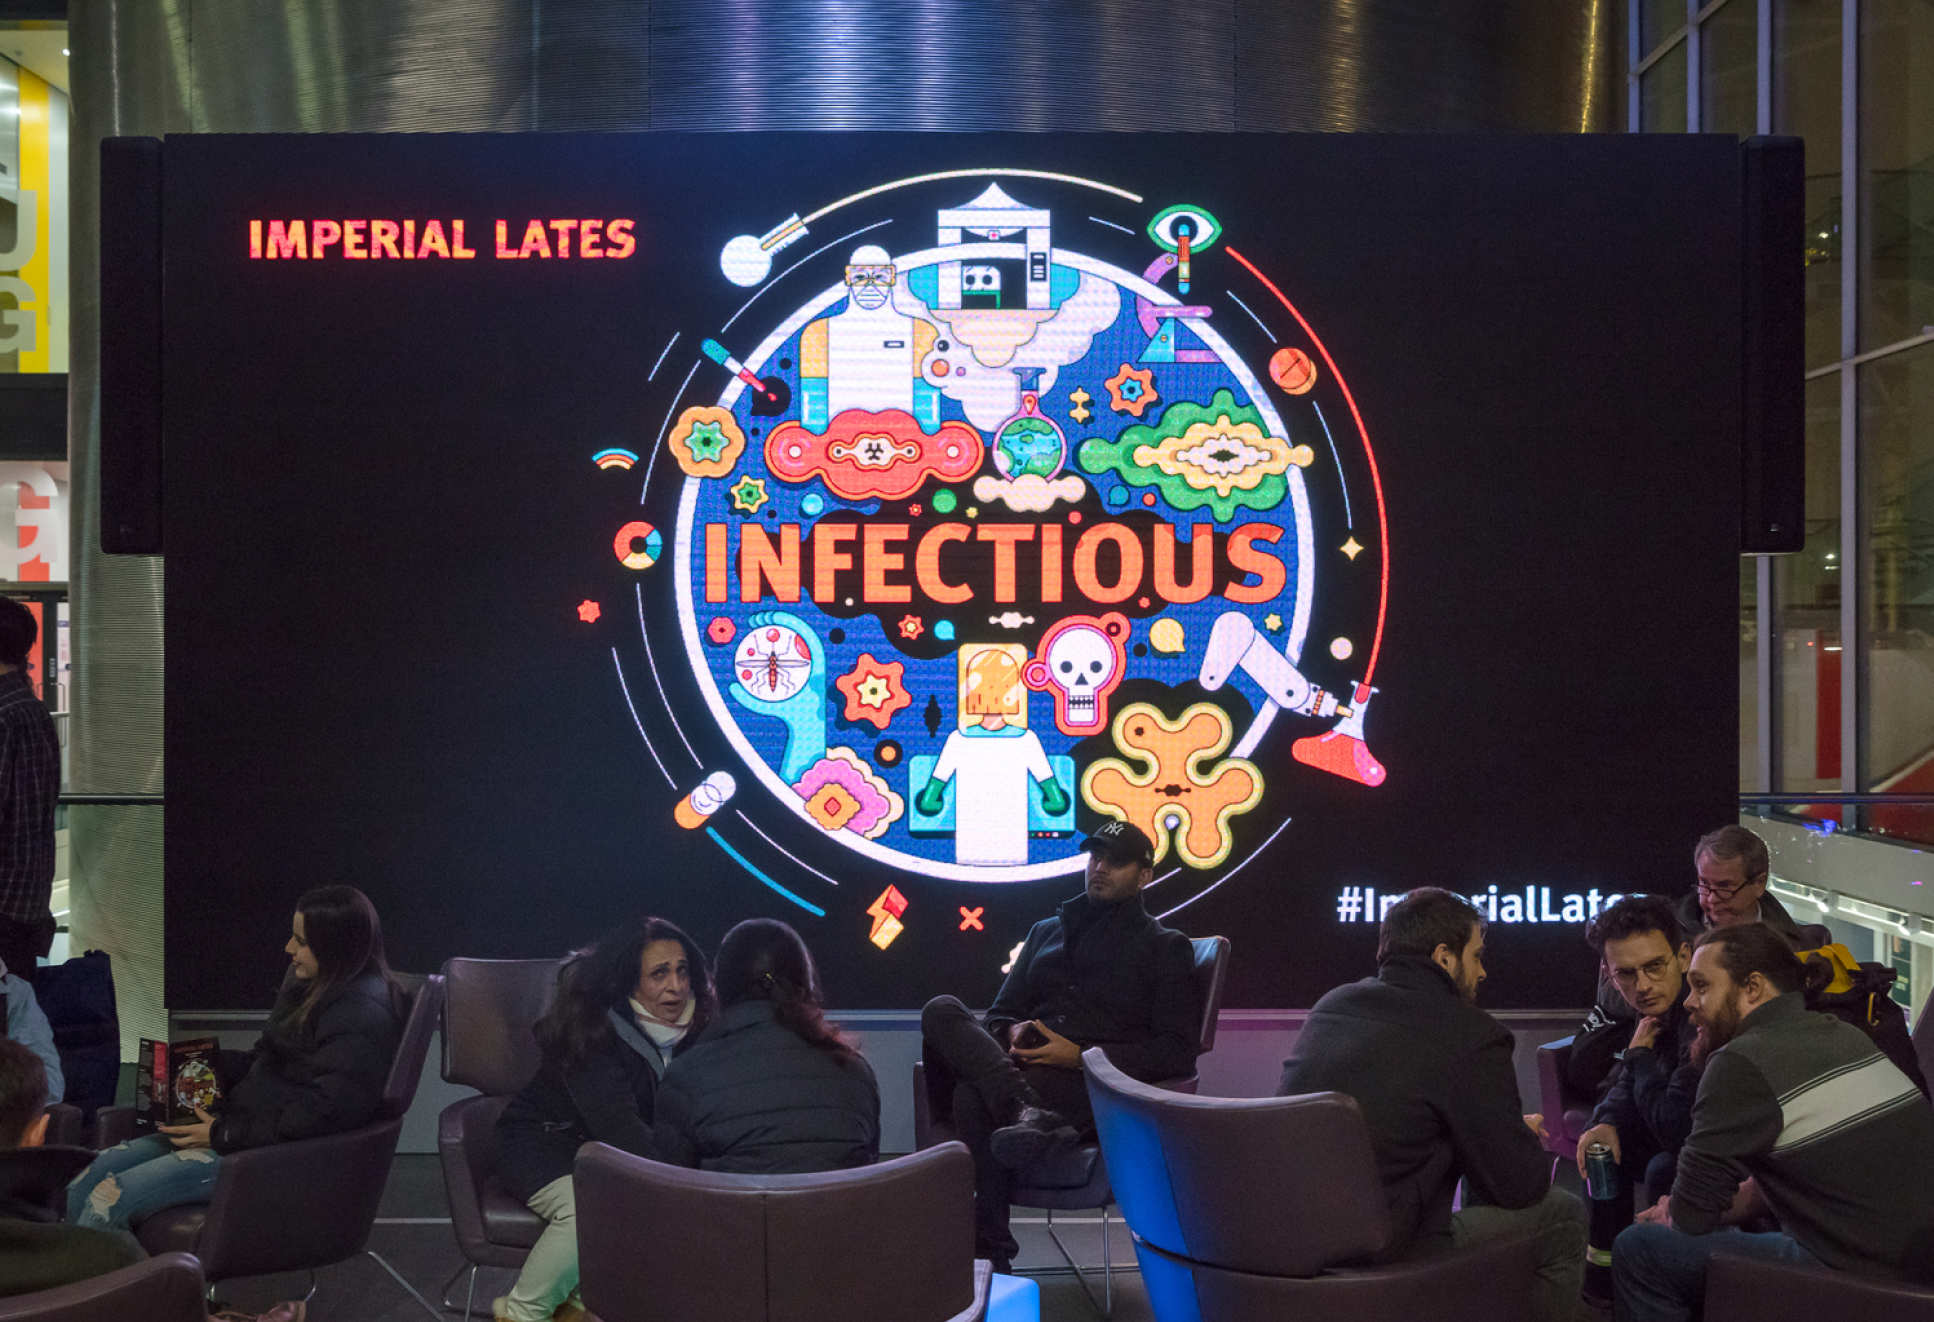 The Imperial Lates: Infectious logo on a big screen in the College's main entrance